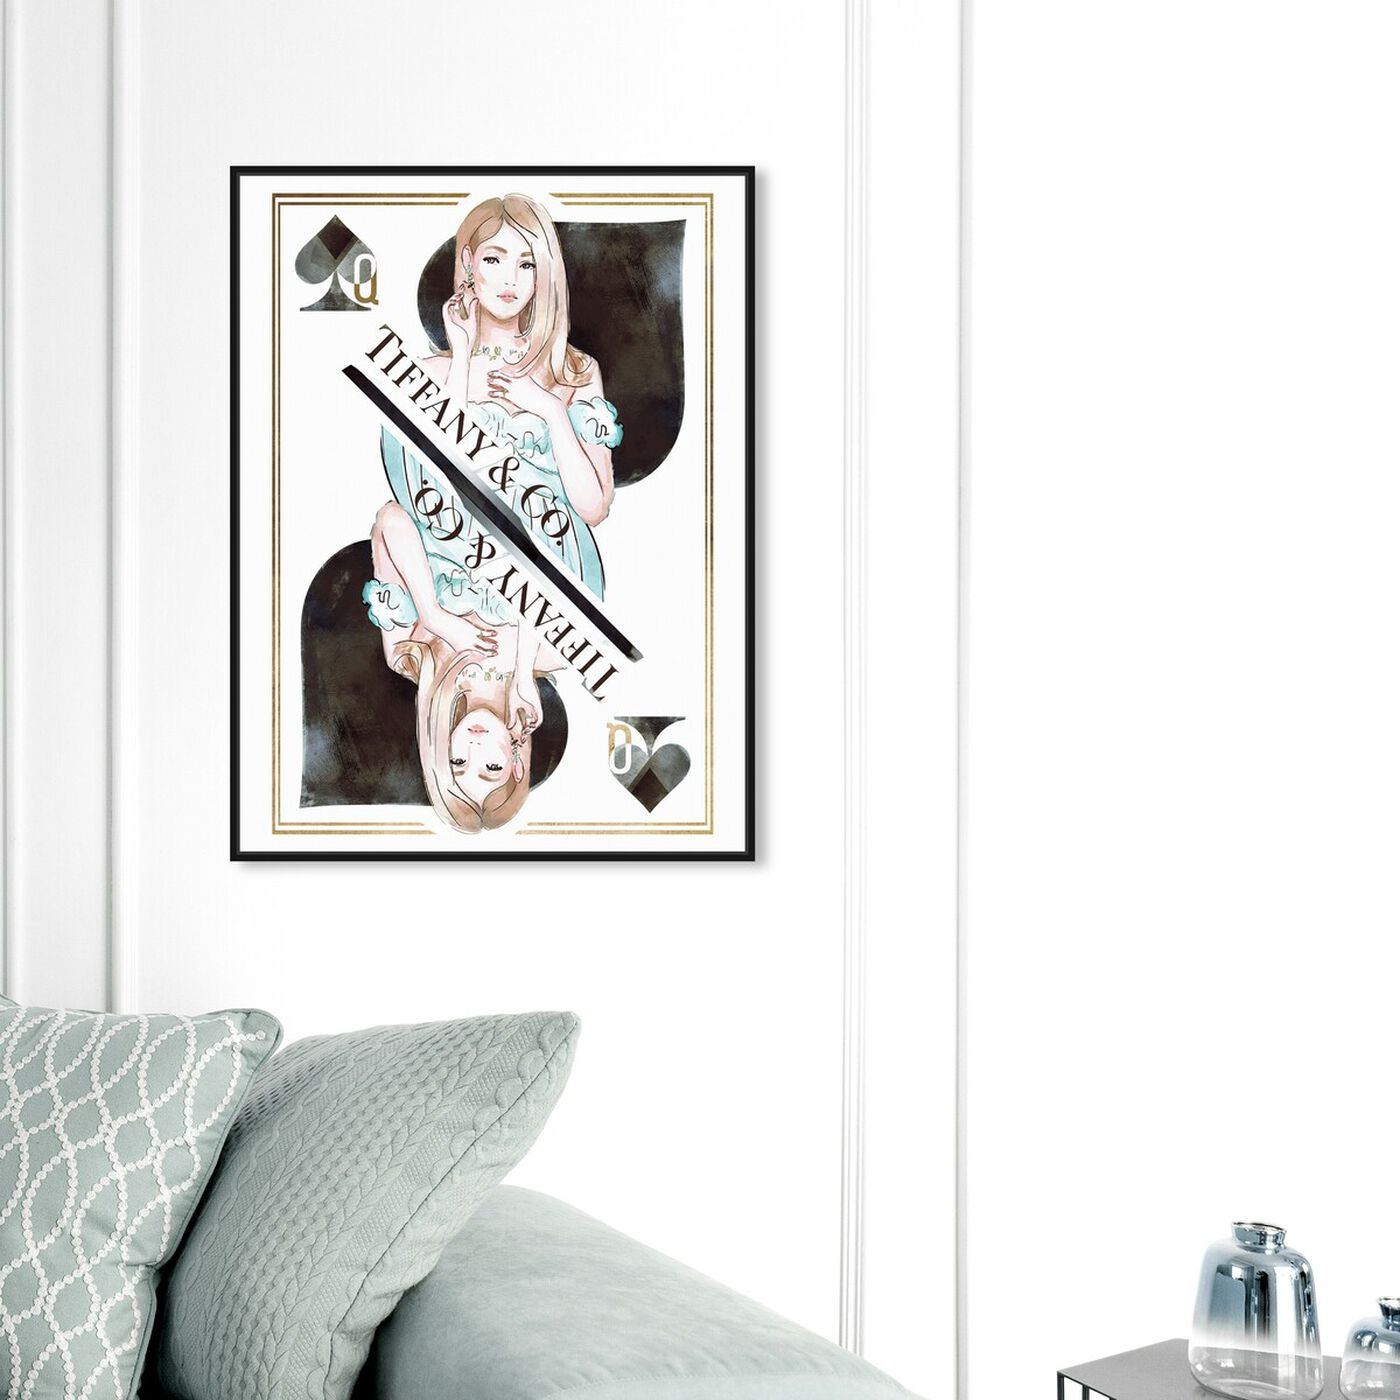 Hanging view of Queen of Spades Precious featuring fashion and glam and outfits art.